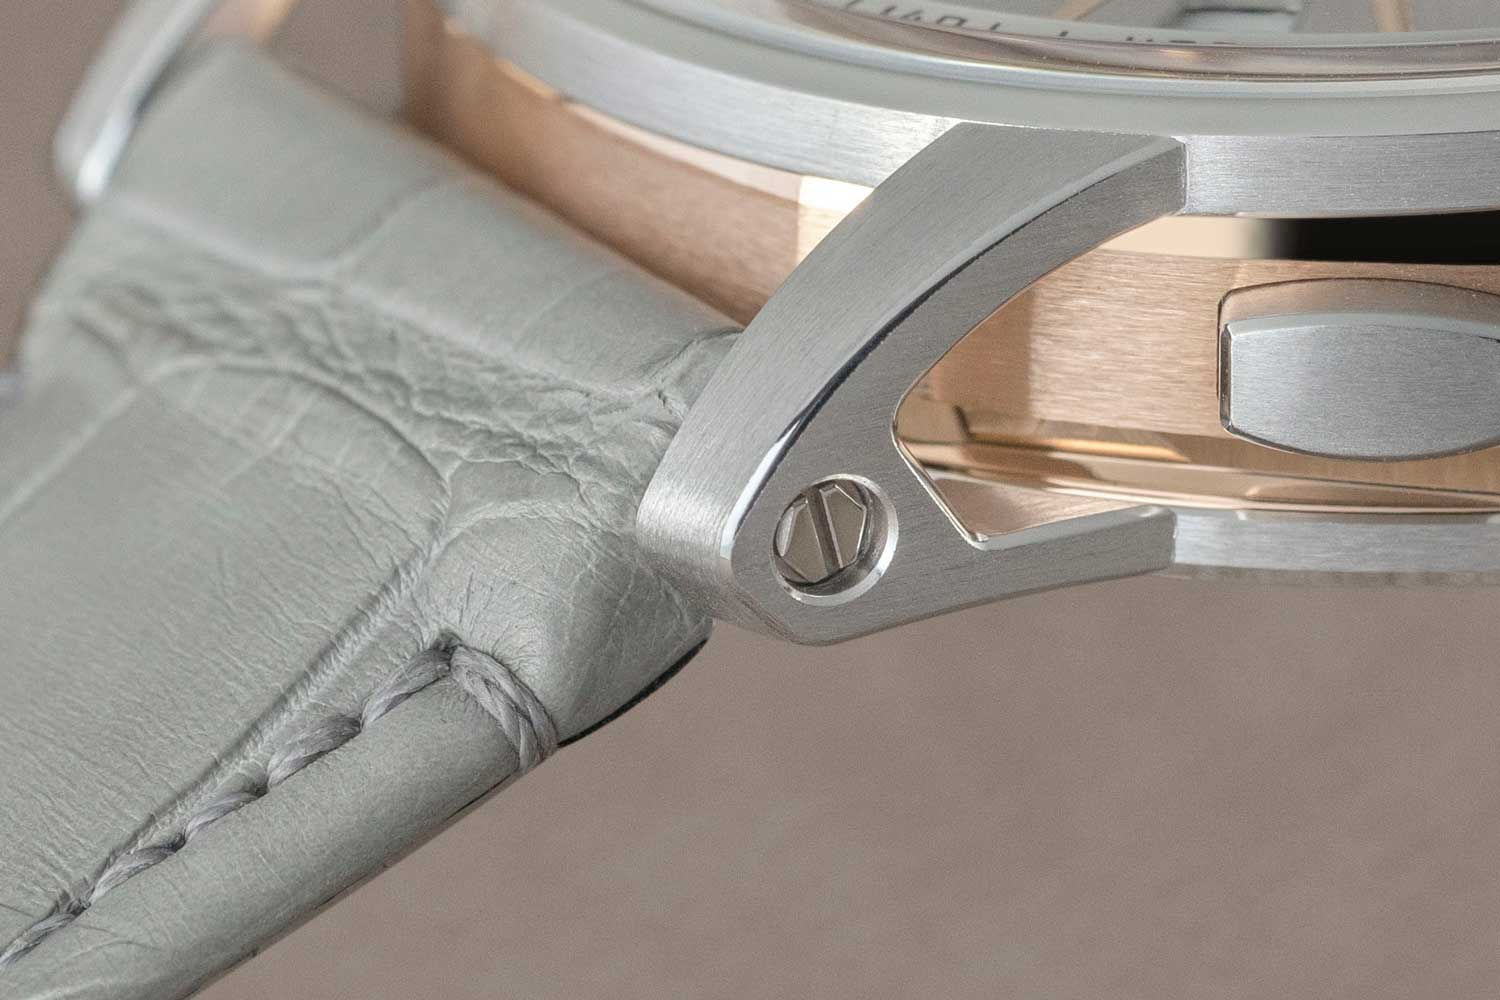 A high-polished, screw-slotted, hexagonal-shaped threaded device used to retain the attachment for the strap on Code 11.59 by Audemars Piguet timepieces (©Revolution)